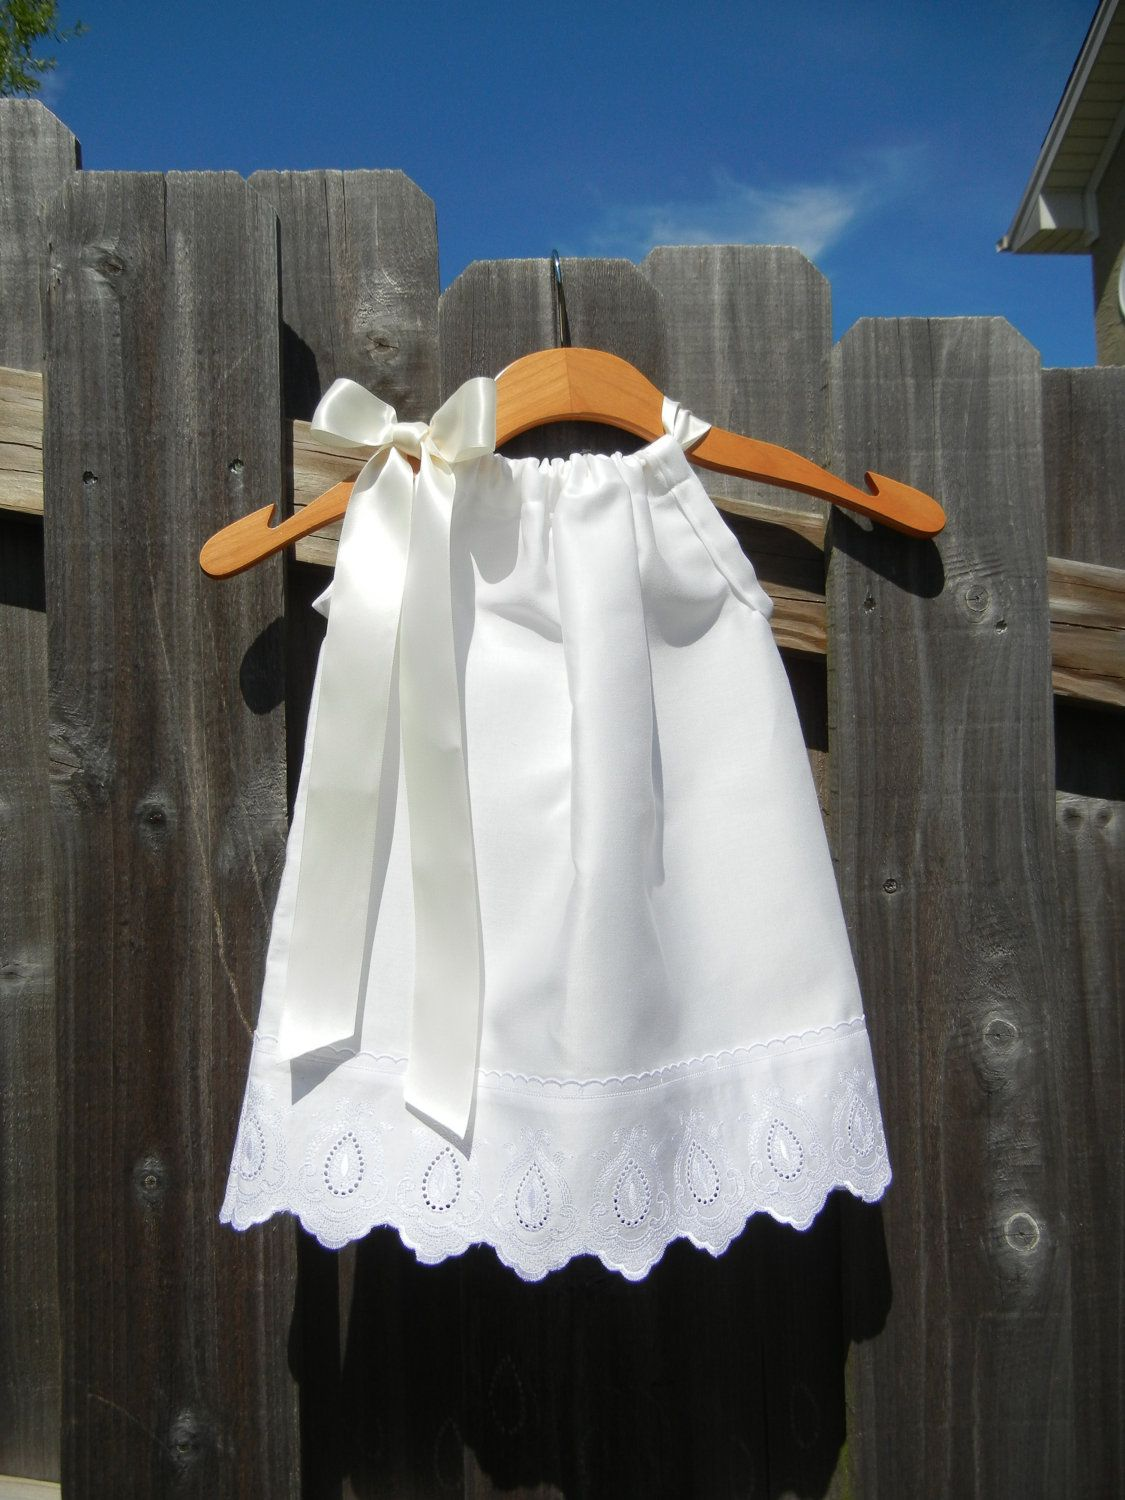 LAST ONE - White Pillowcase Dress with Scallop Lace - sizes 3m-5T ...